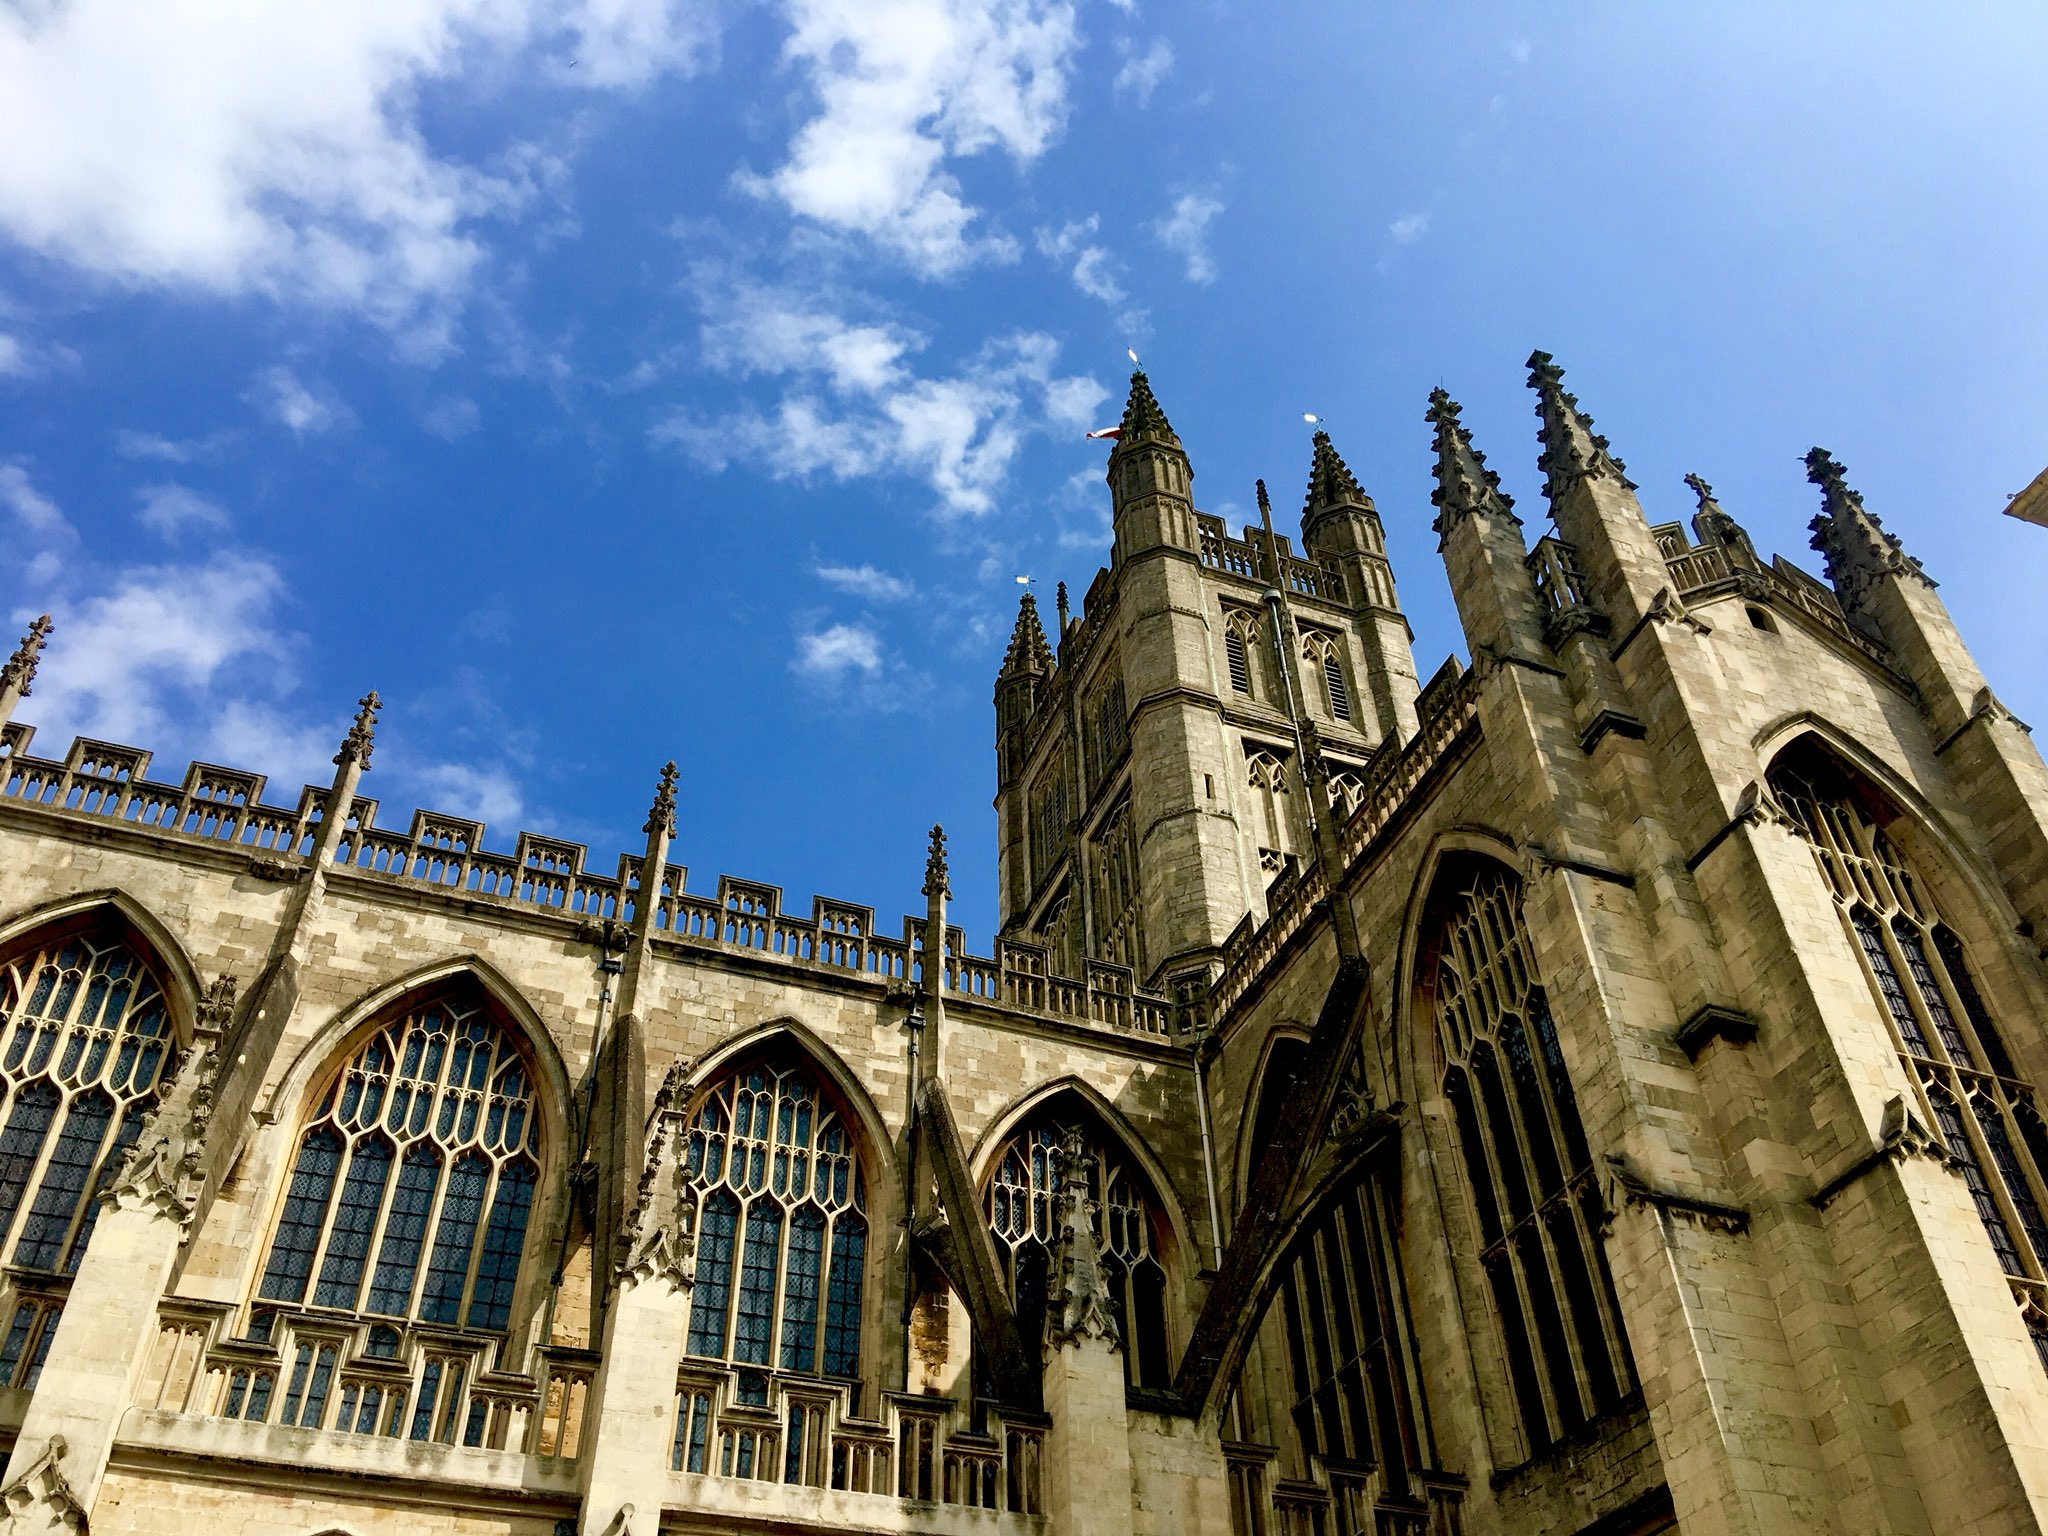 Odyssey England 2018, The Abbey Church of Saint Peter and Saint Paul, Bath, commonly known as Bath Abbey. Founded in the 7th century, reorganized in the 10th century and rebuilt in the 12th and 16th centuries. https://t.co/FiwWrde3sW